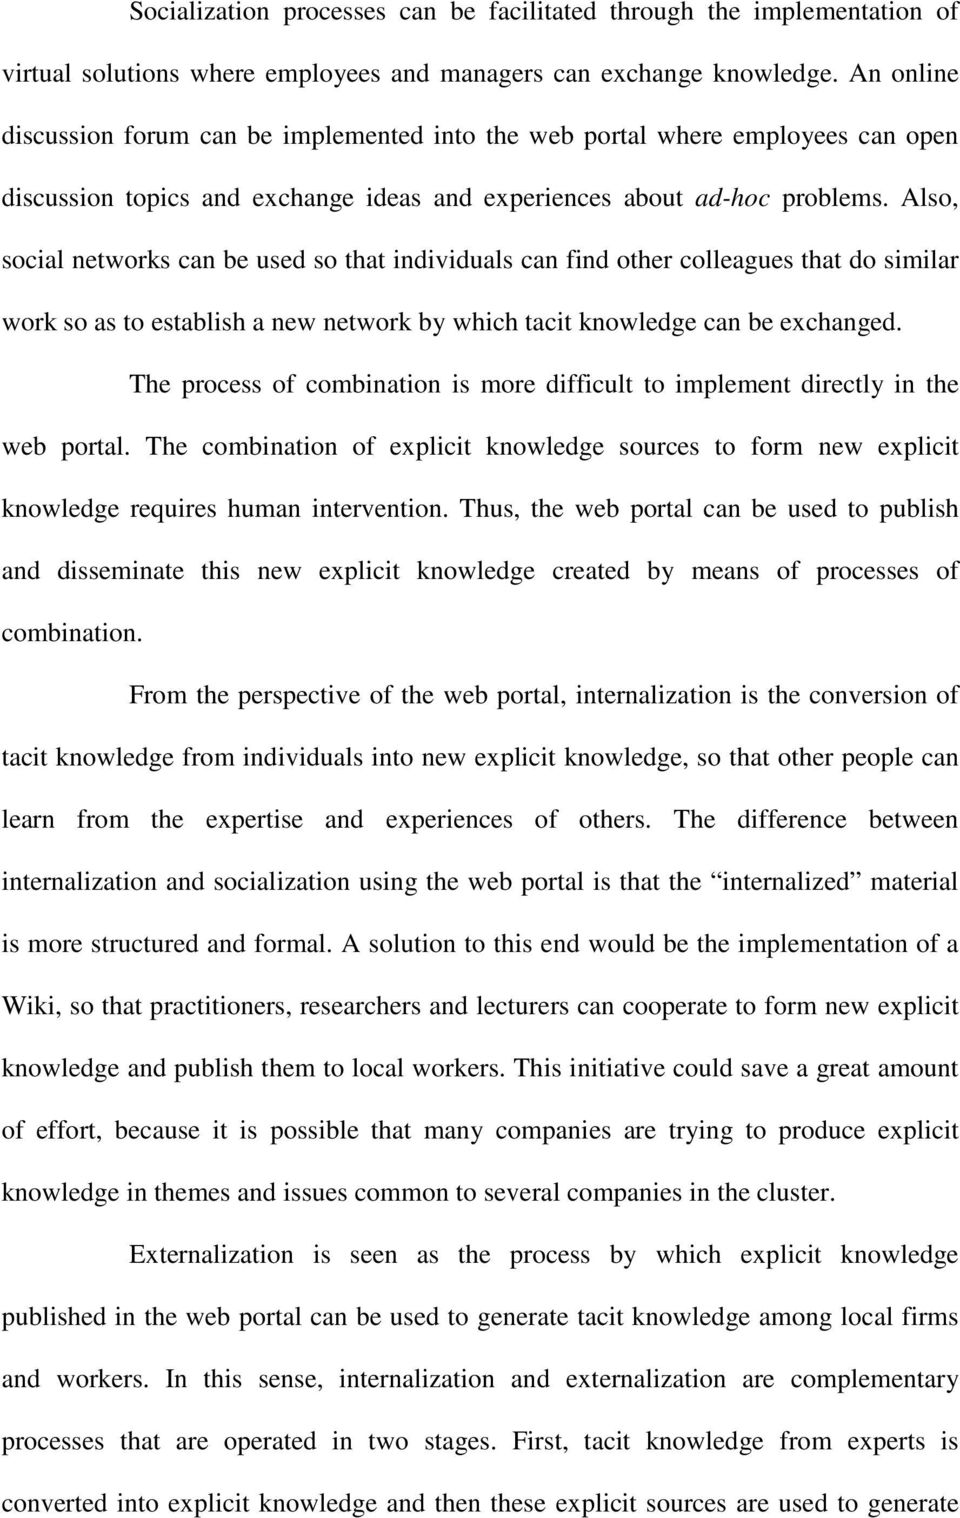 Also, social networks can be used so that individuals can find other colleagues that do similar work so as to establish a new network by which tacit knowledge can be exchanged.